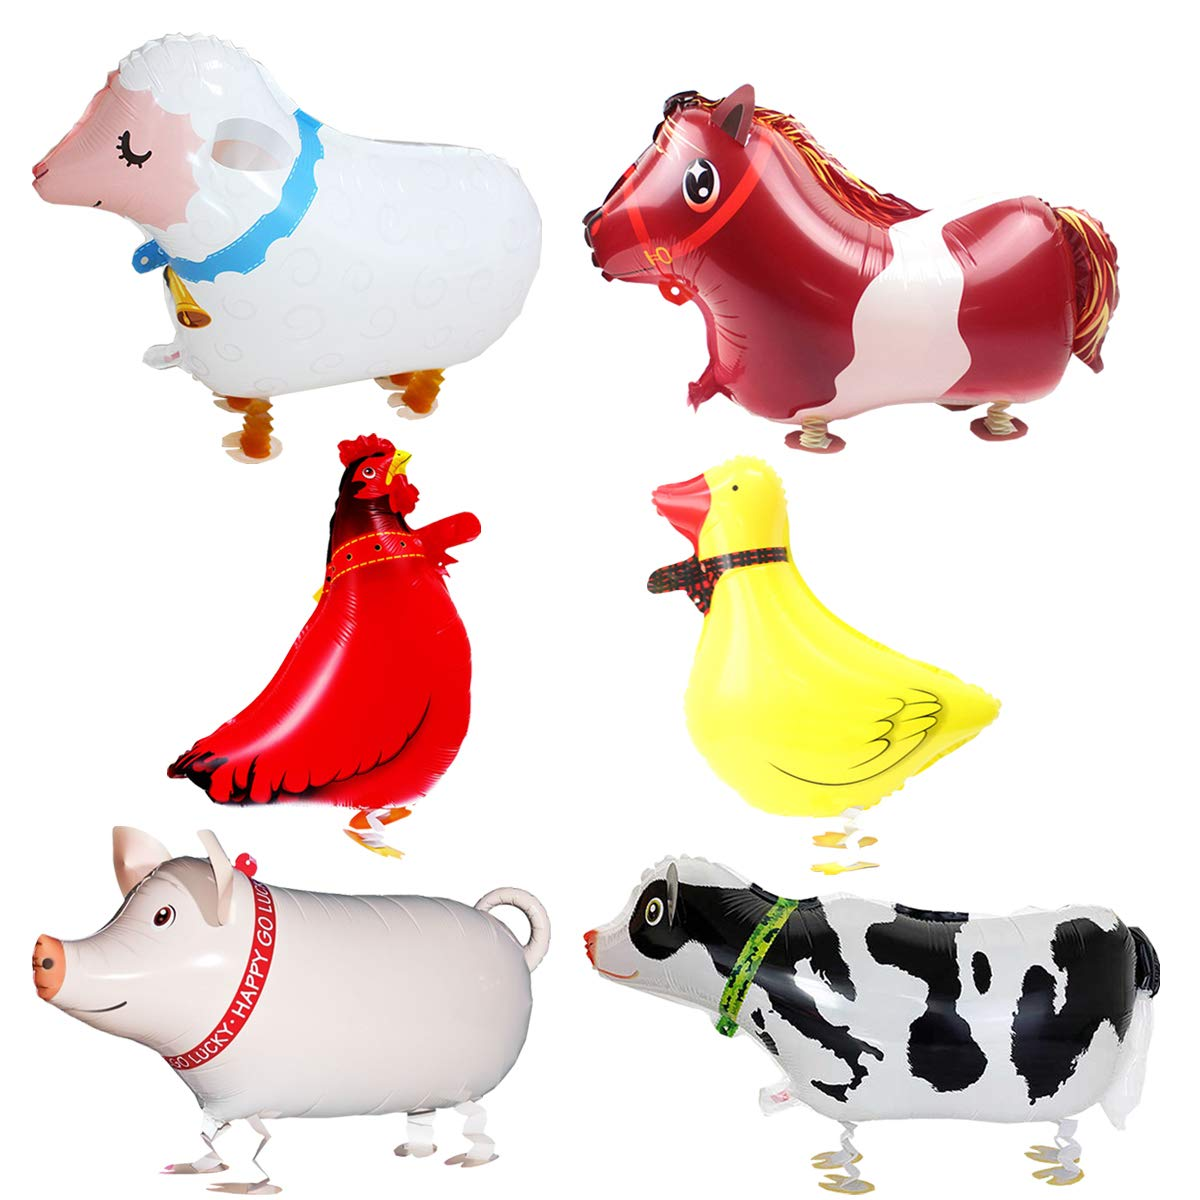 Animal Theme Birthday Party Decorations | 6 Pieces Walking Animal Balloons Farm Animal Balloon Birthday Party BBQ Party Decoration Kit (Pig, Cow, Chicken, Duck, Sheep, Horse)